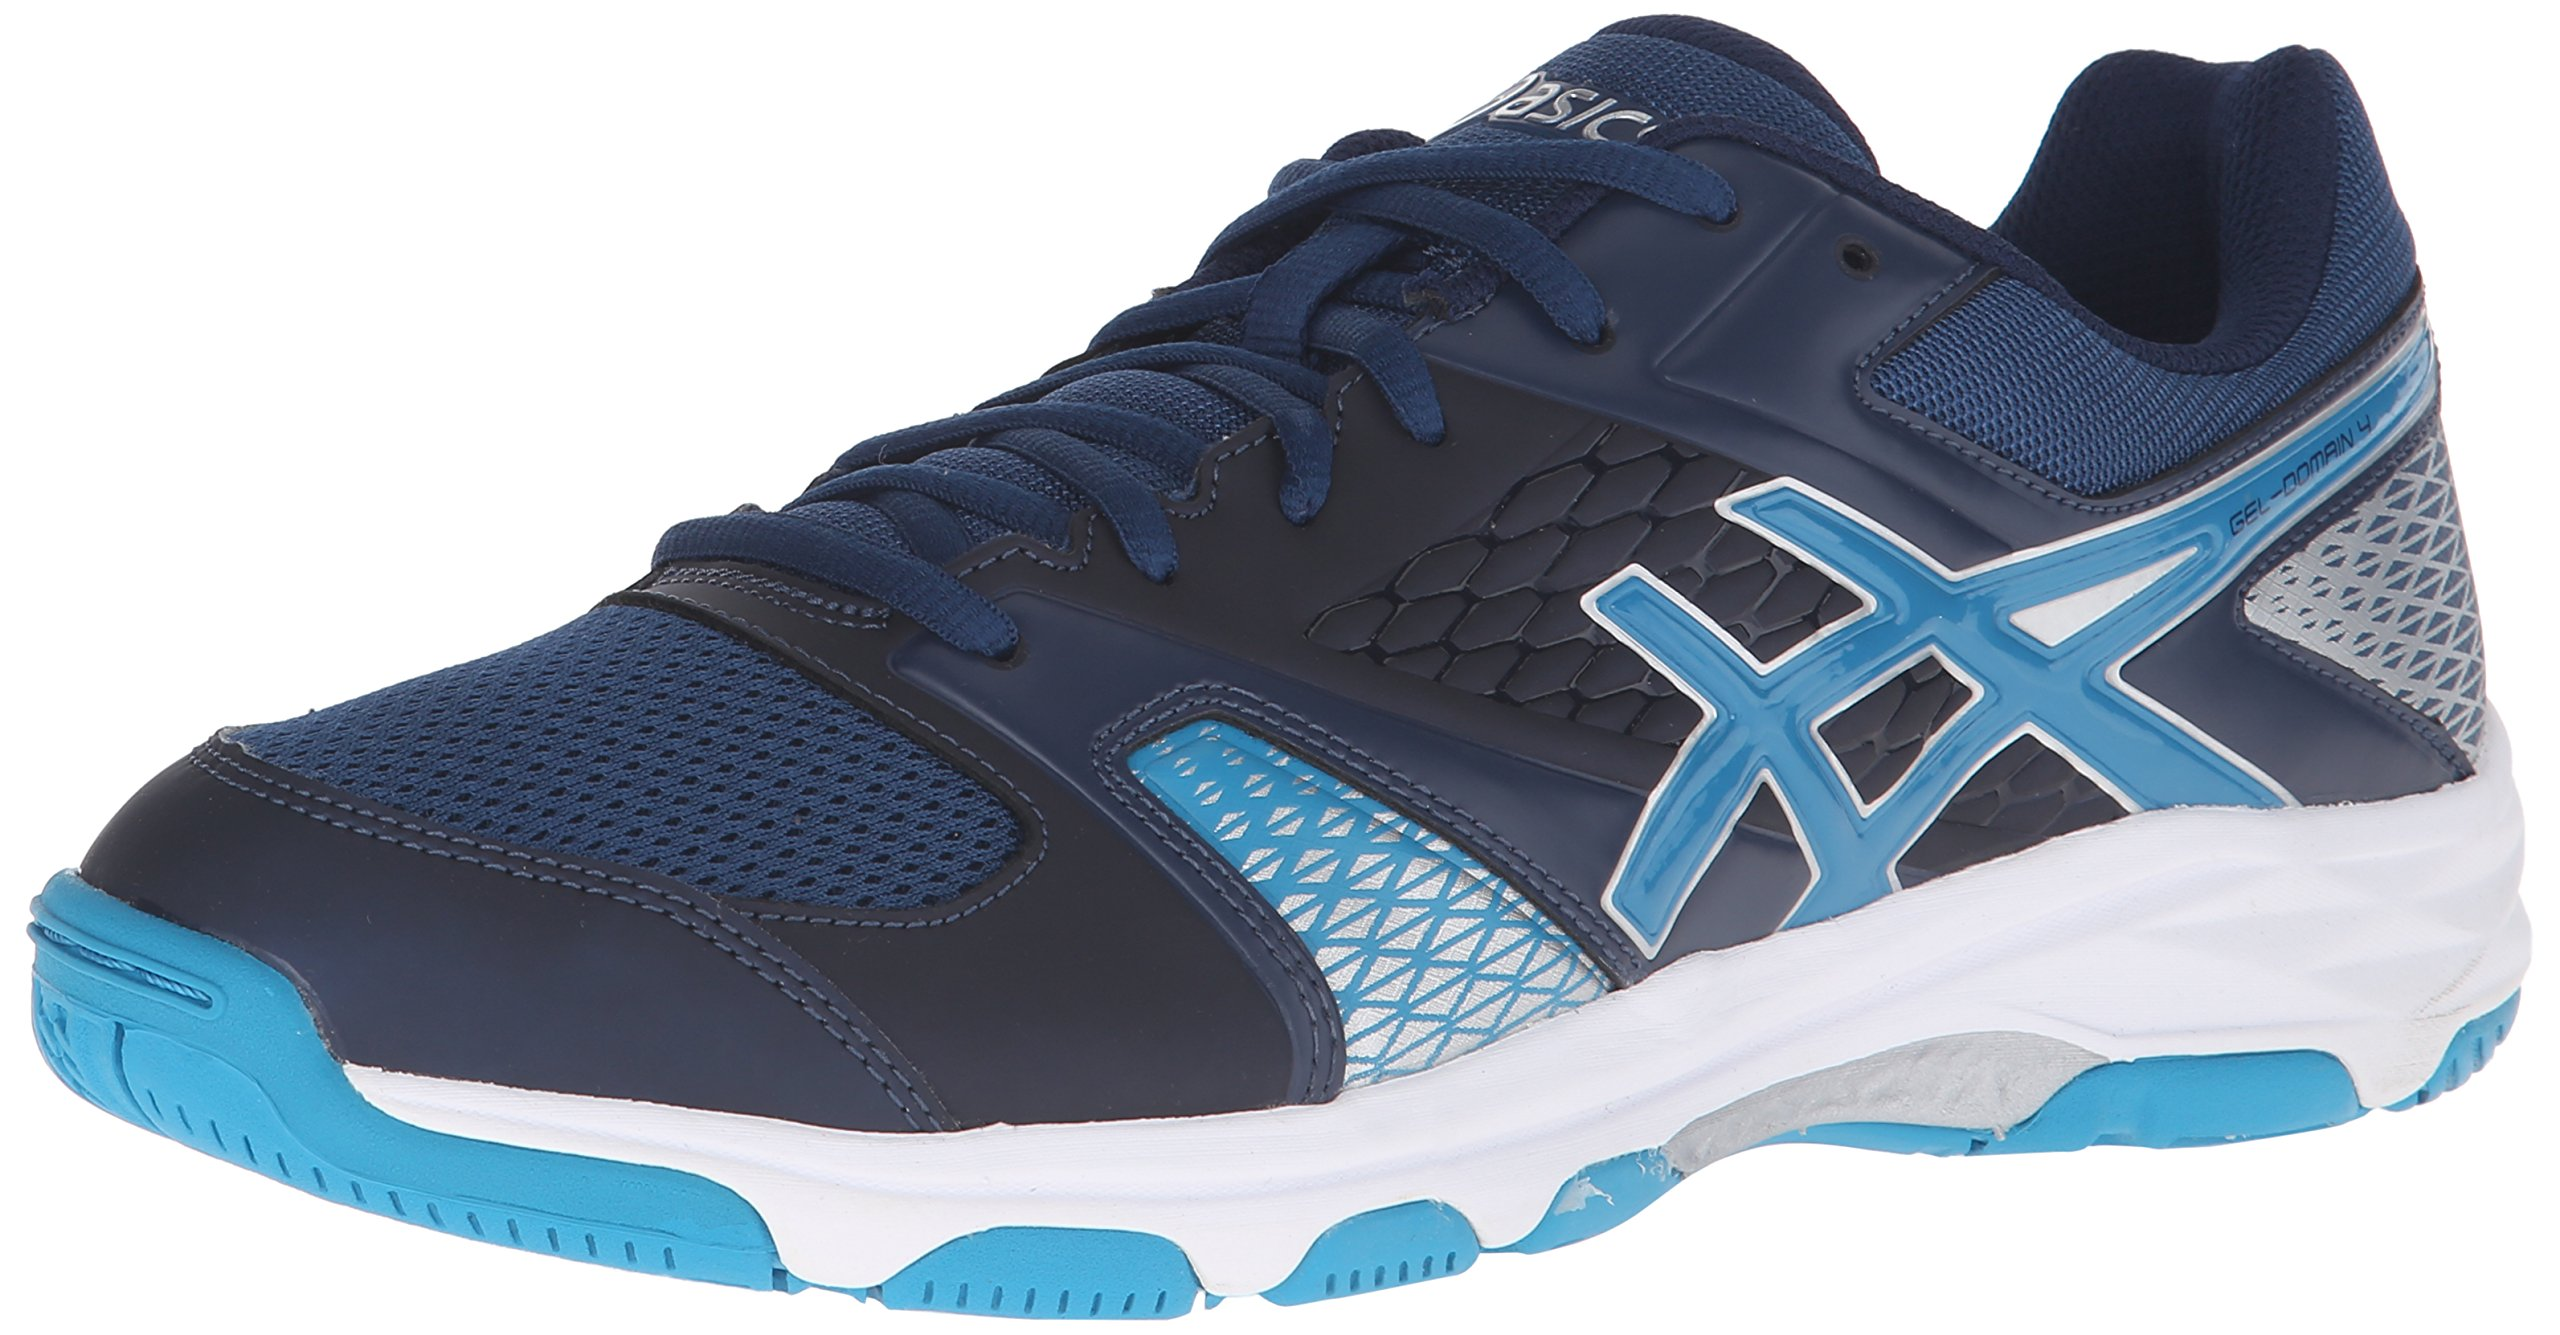 ASICS Men's Gel-Domain 4 Volleyball Shoe, Poseidon/Blue Jewel/White, 10 M US